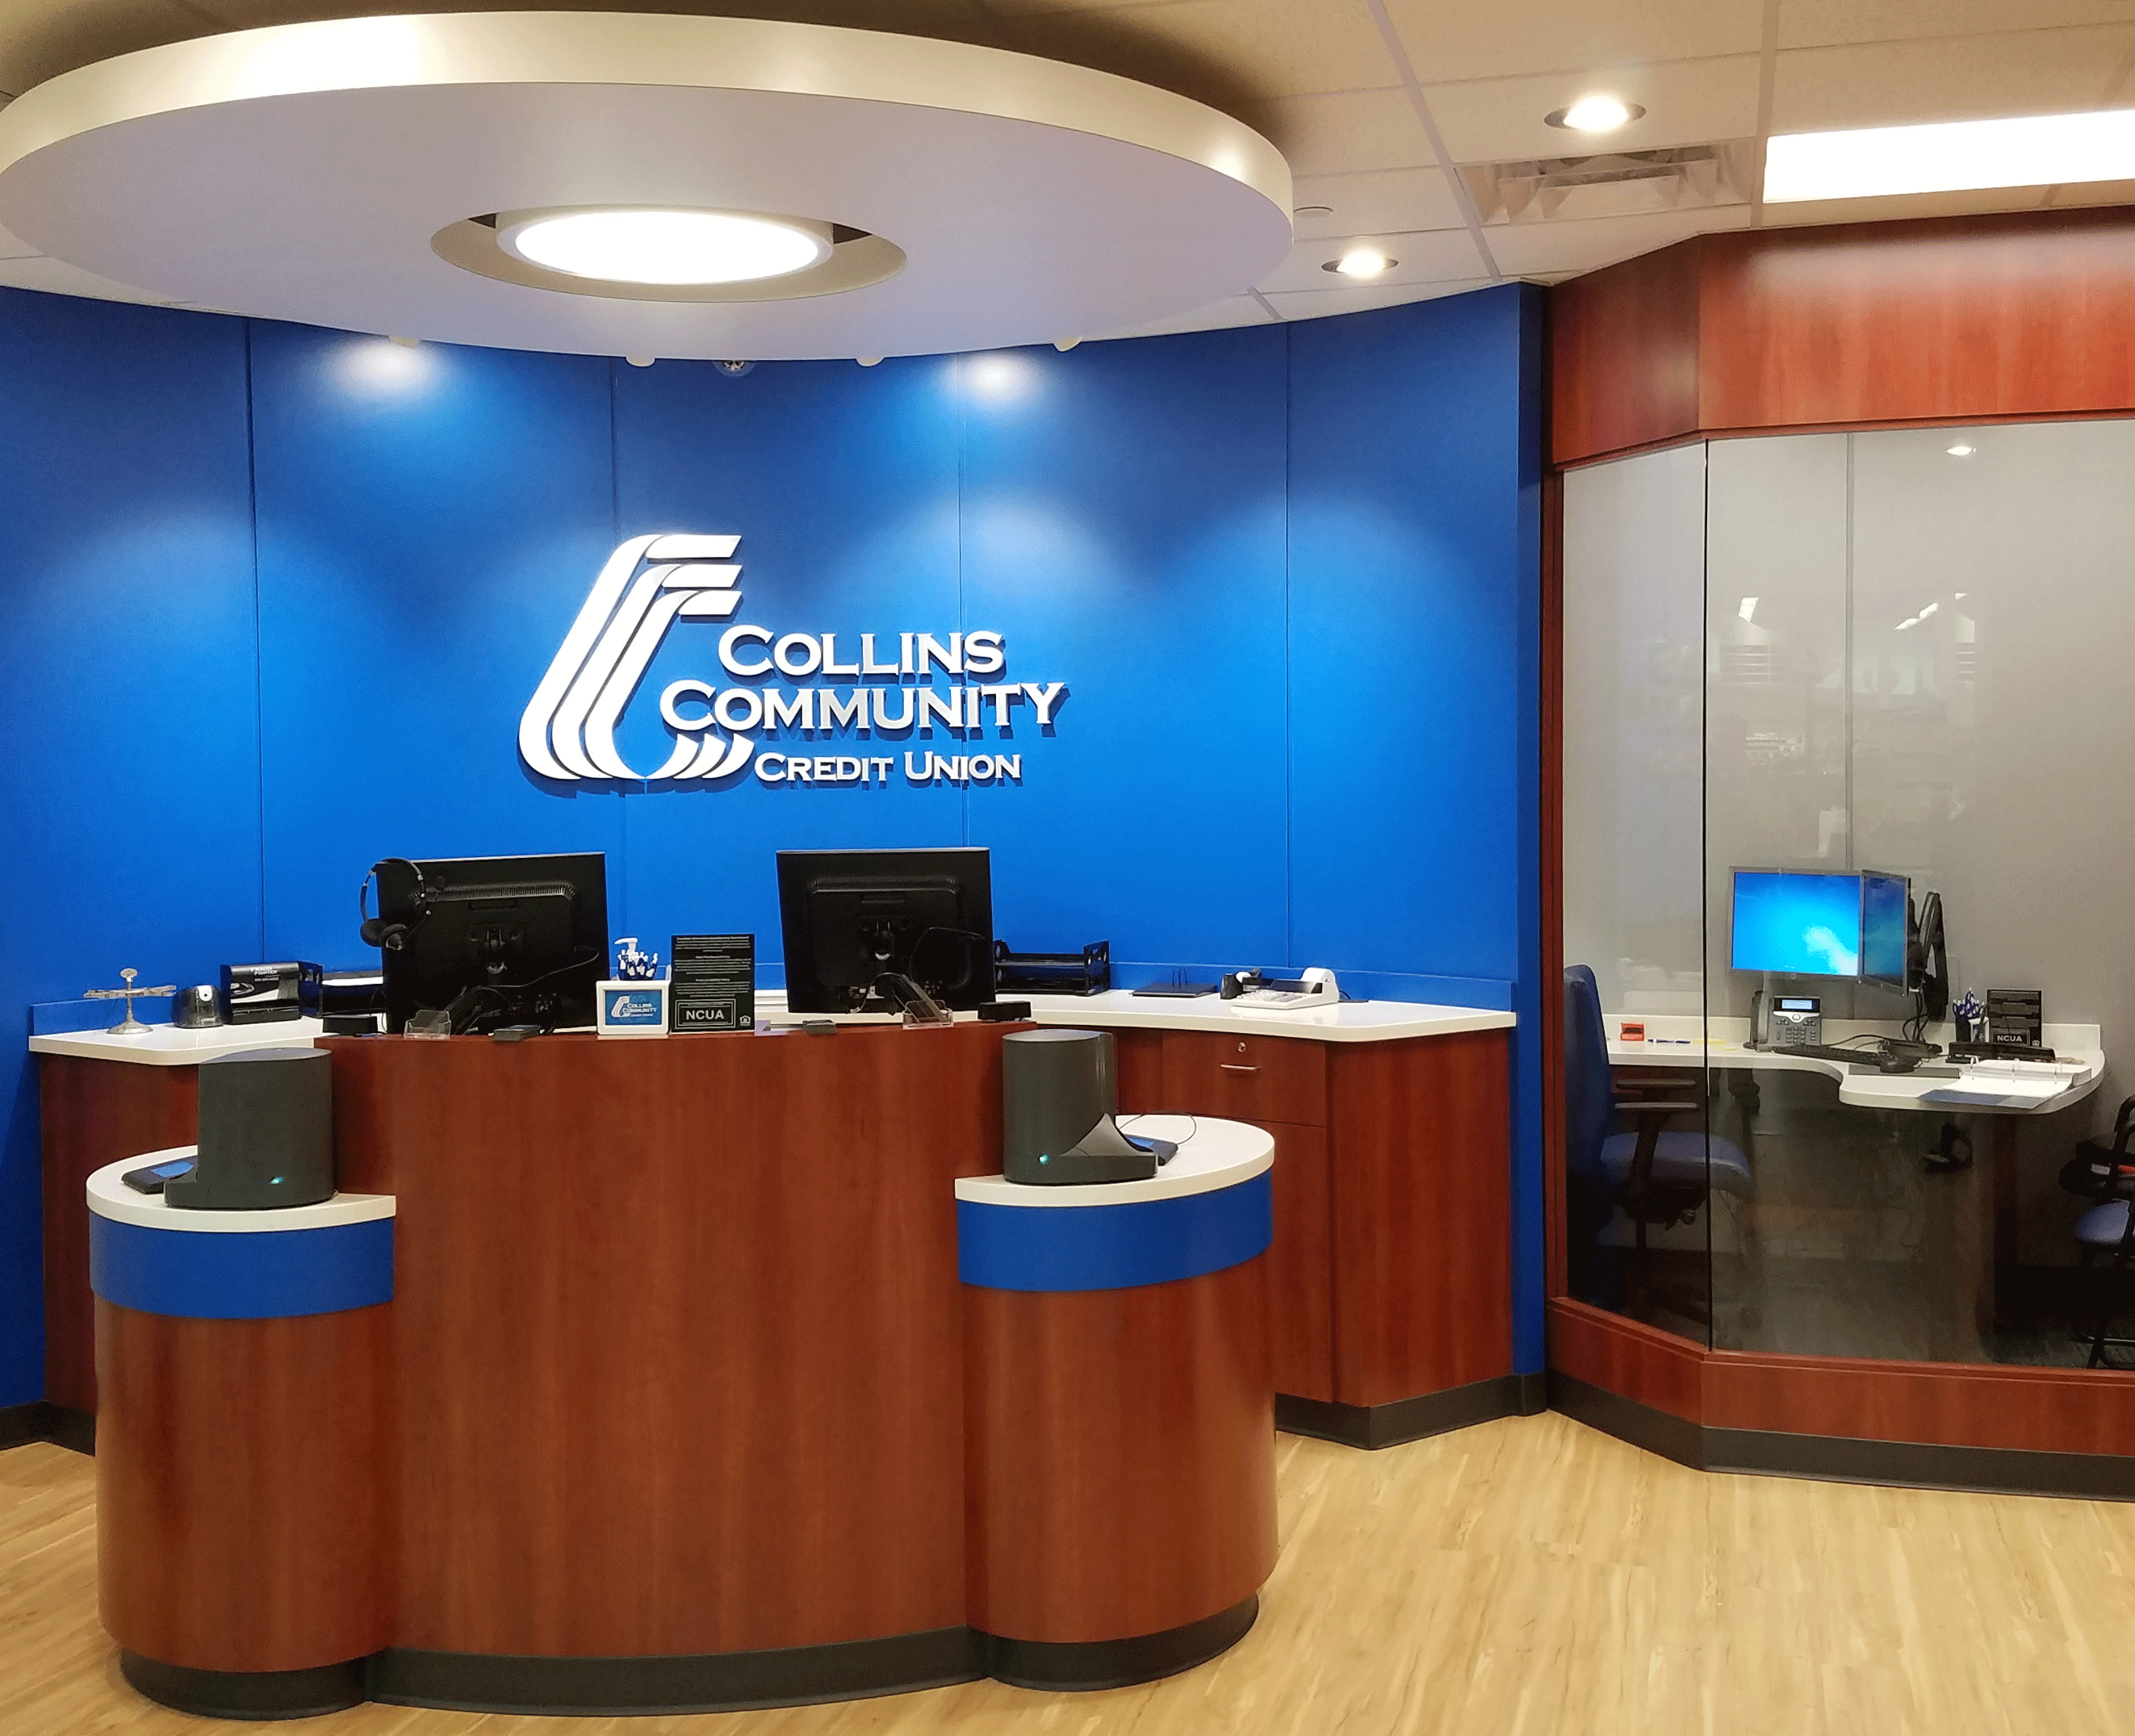 Collins Community Credit Union Ingersoll Location in Des Moines